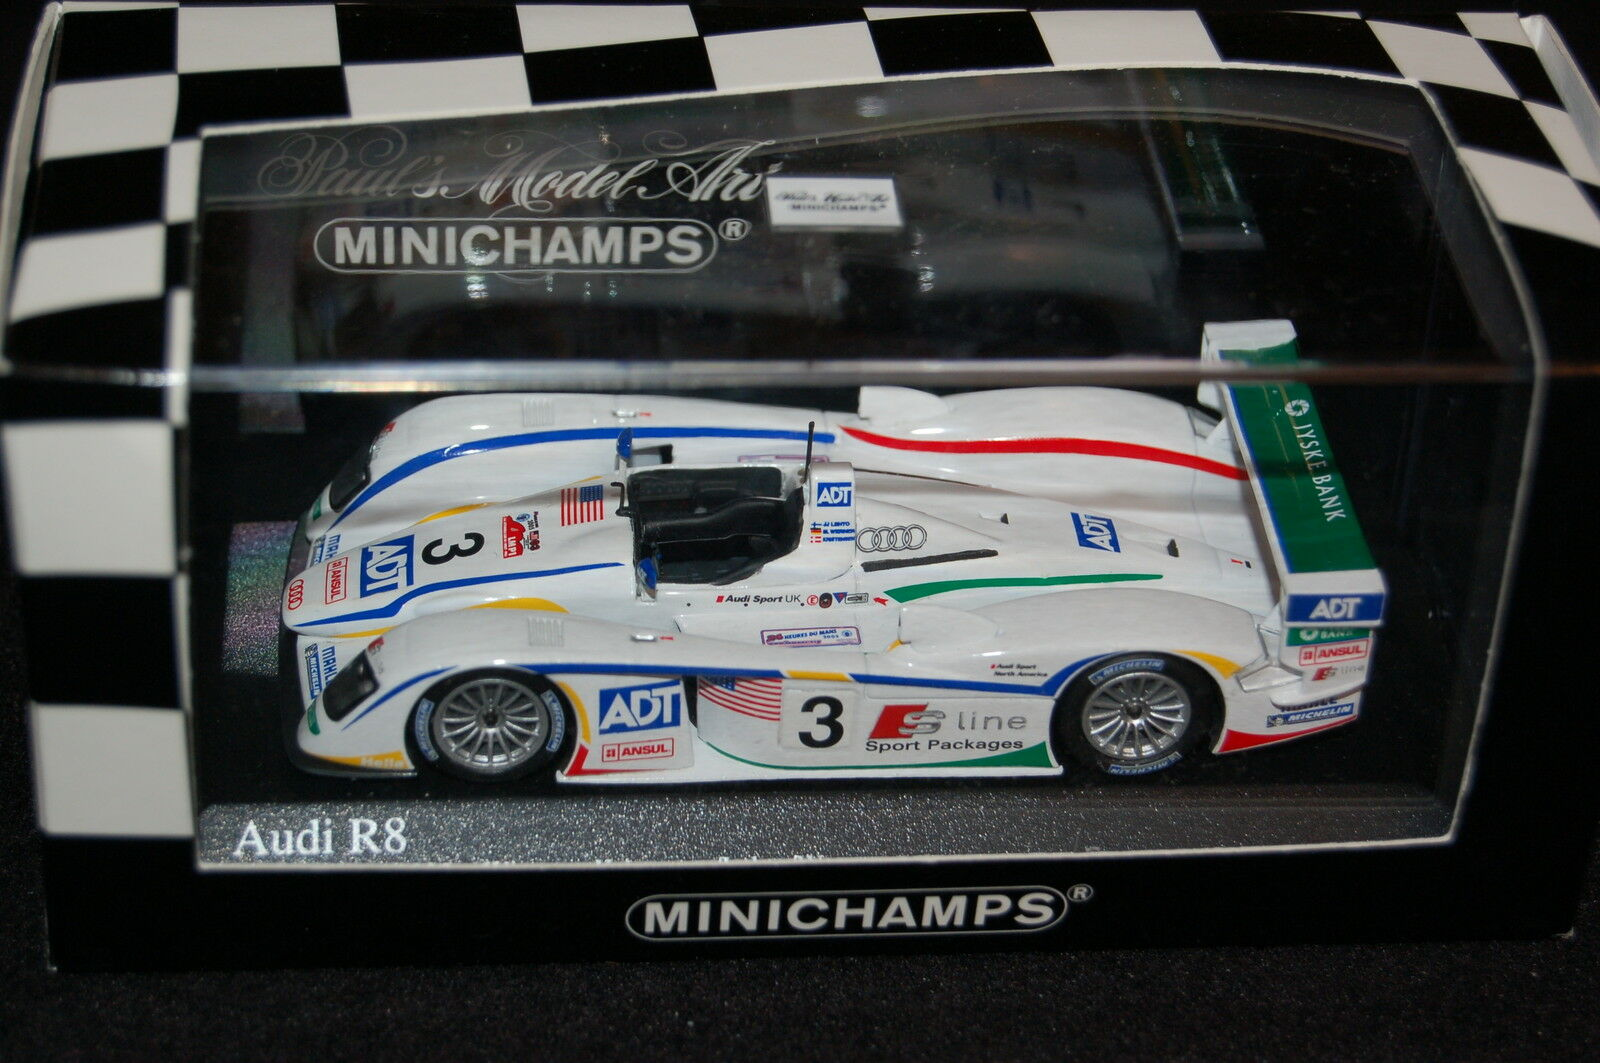 AUDI R8  2 TEAM CHAMPION LE MANS 2004 - MINICHAMPS 1 43 400041302